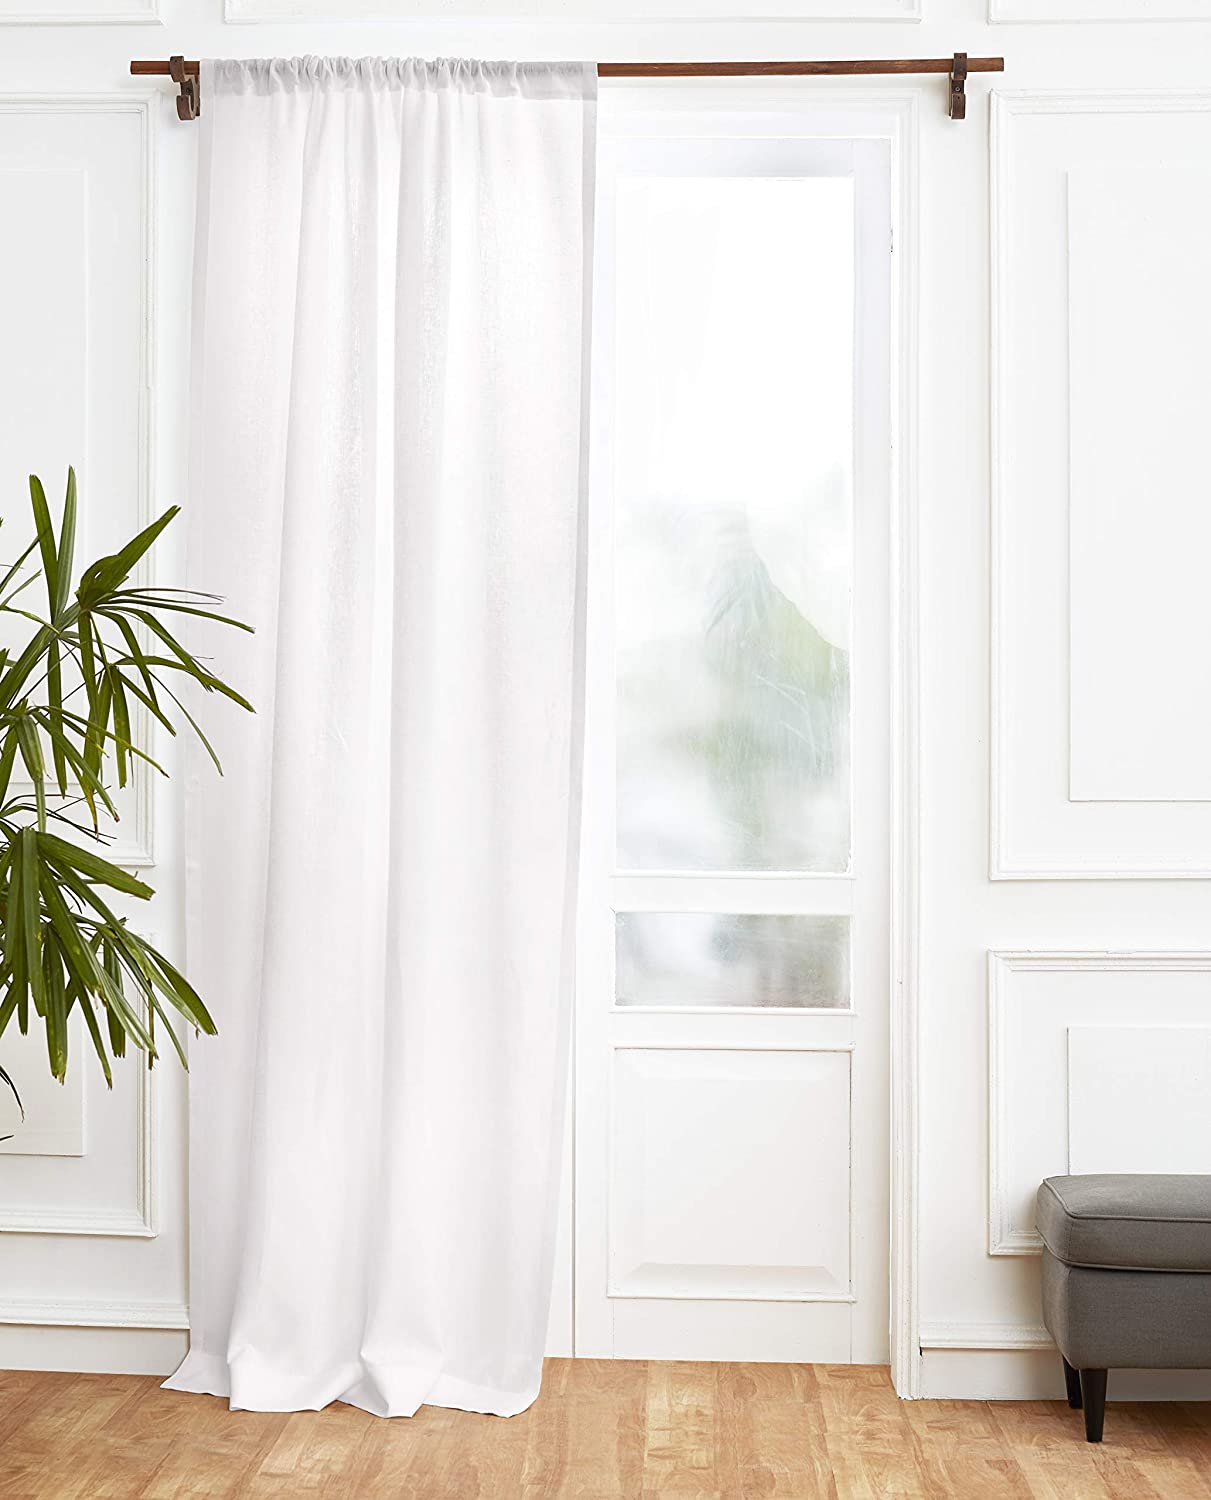 Solino Home 100% Pure Linen Curtain – 52 x 108 Inch White Lightweight Rod Pocket Window Panel – Handcrafted from European Flax